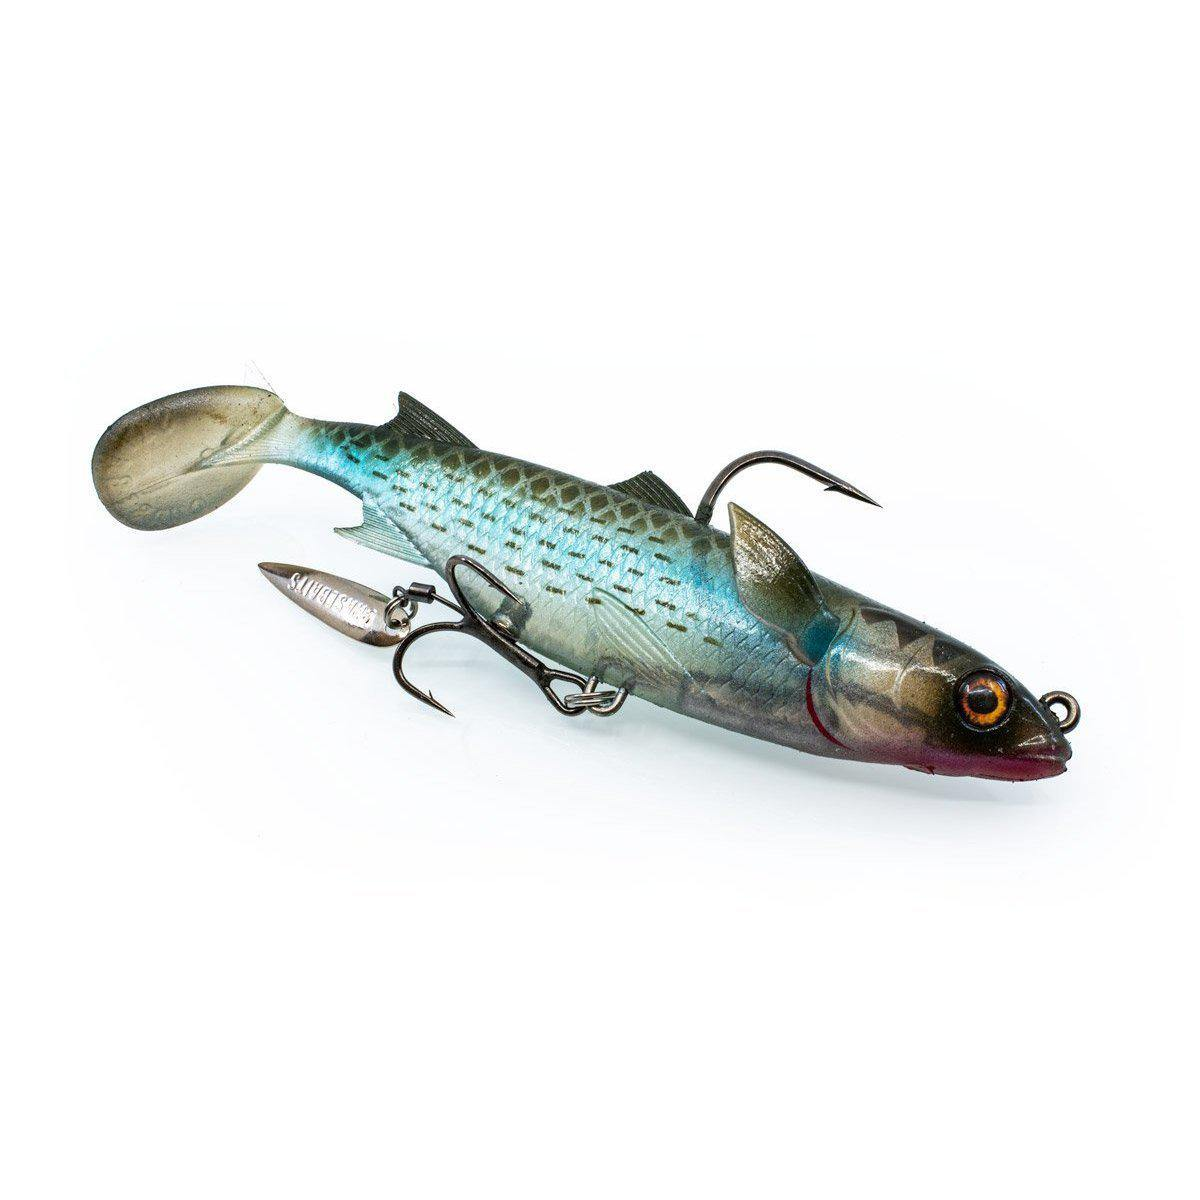 Chasebaits 125mm Poddy Mullet Lure